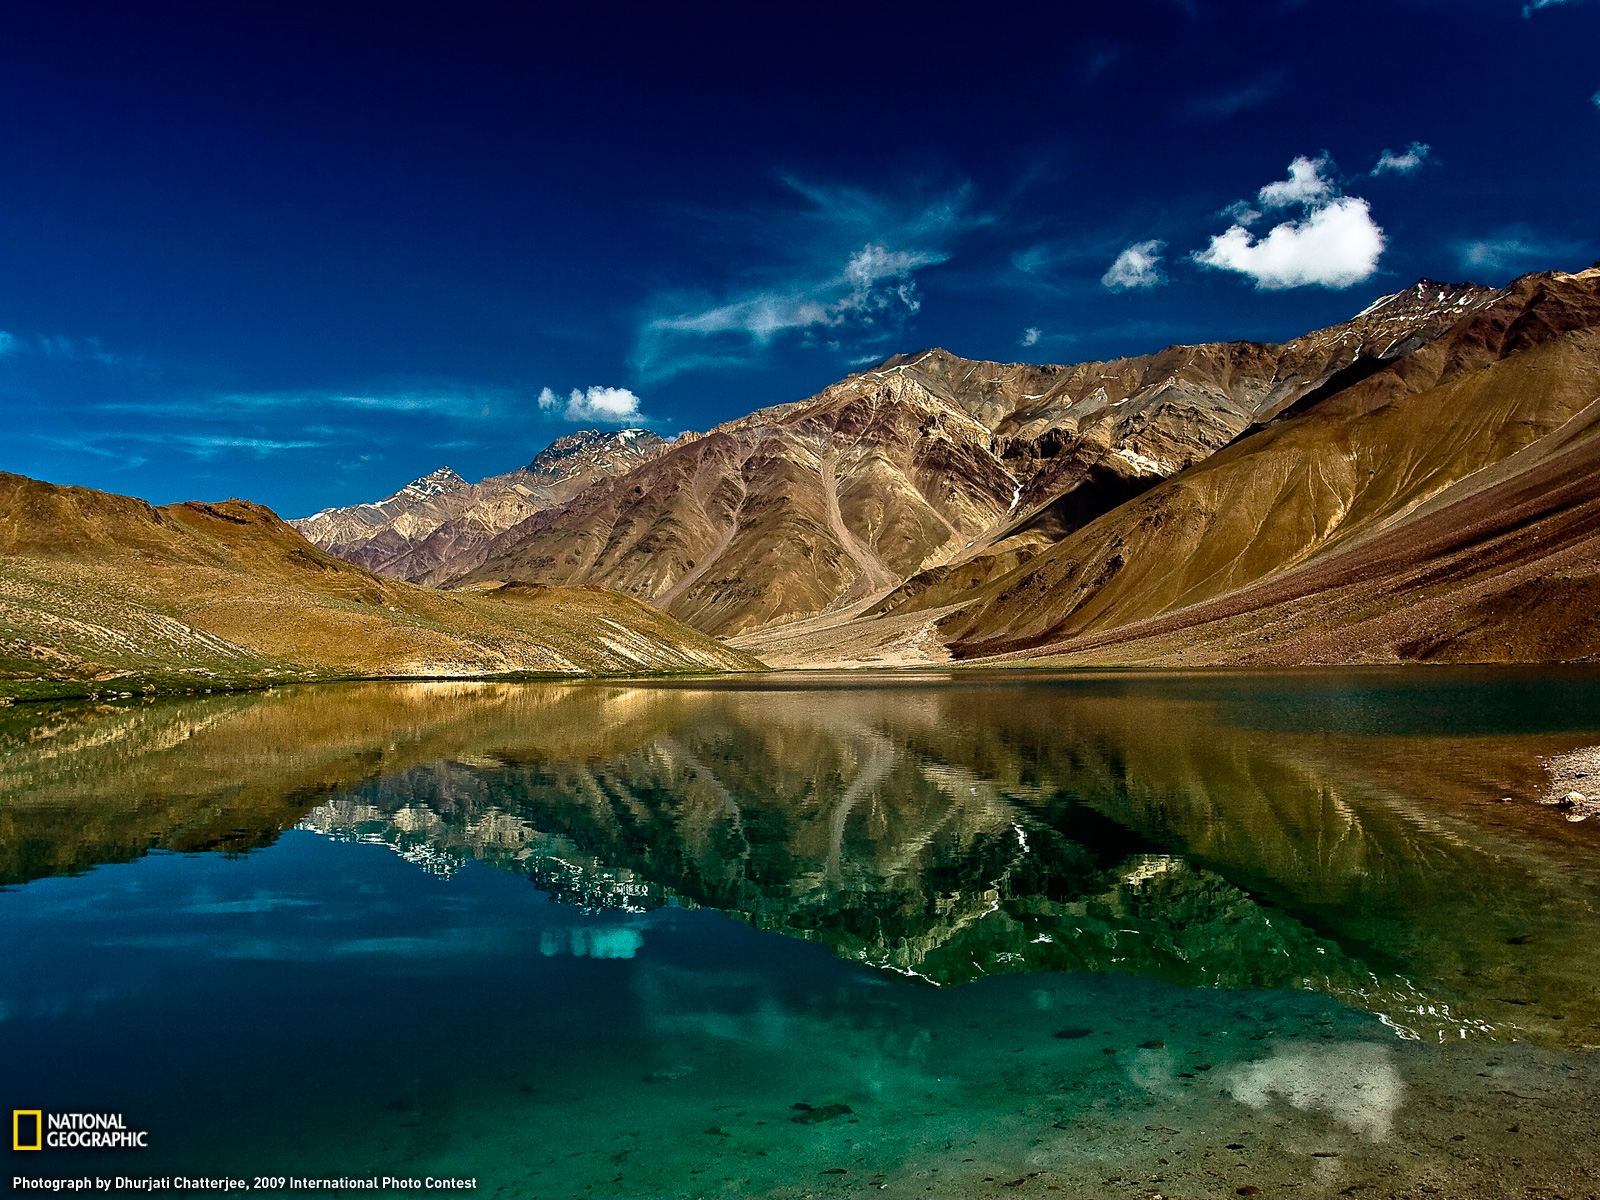 Moon Photo India Wallpaper National Geographic Photo of the Day 1600x1200